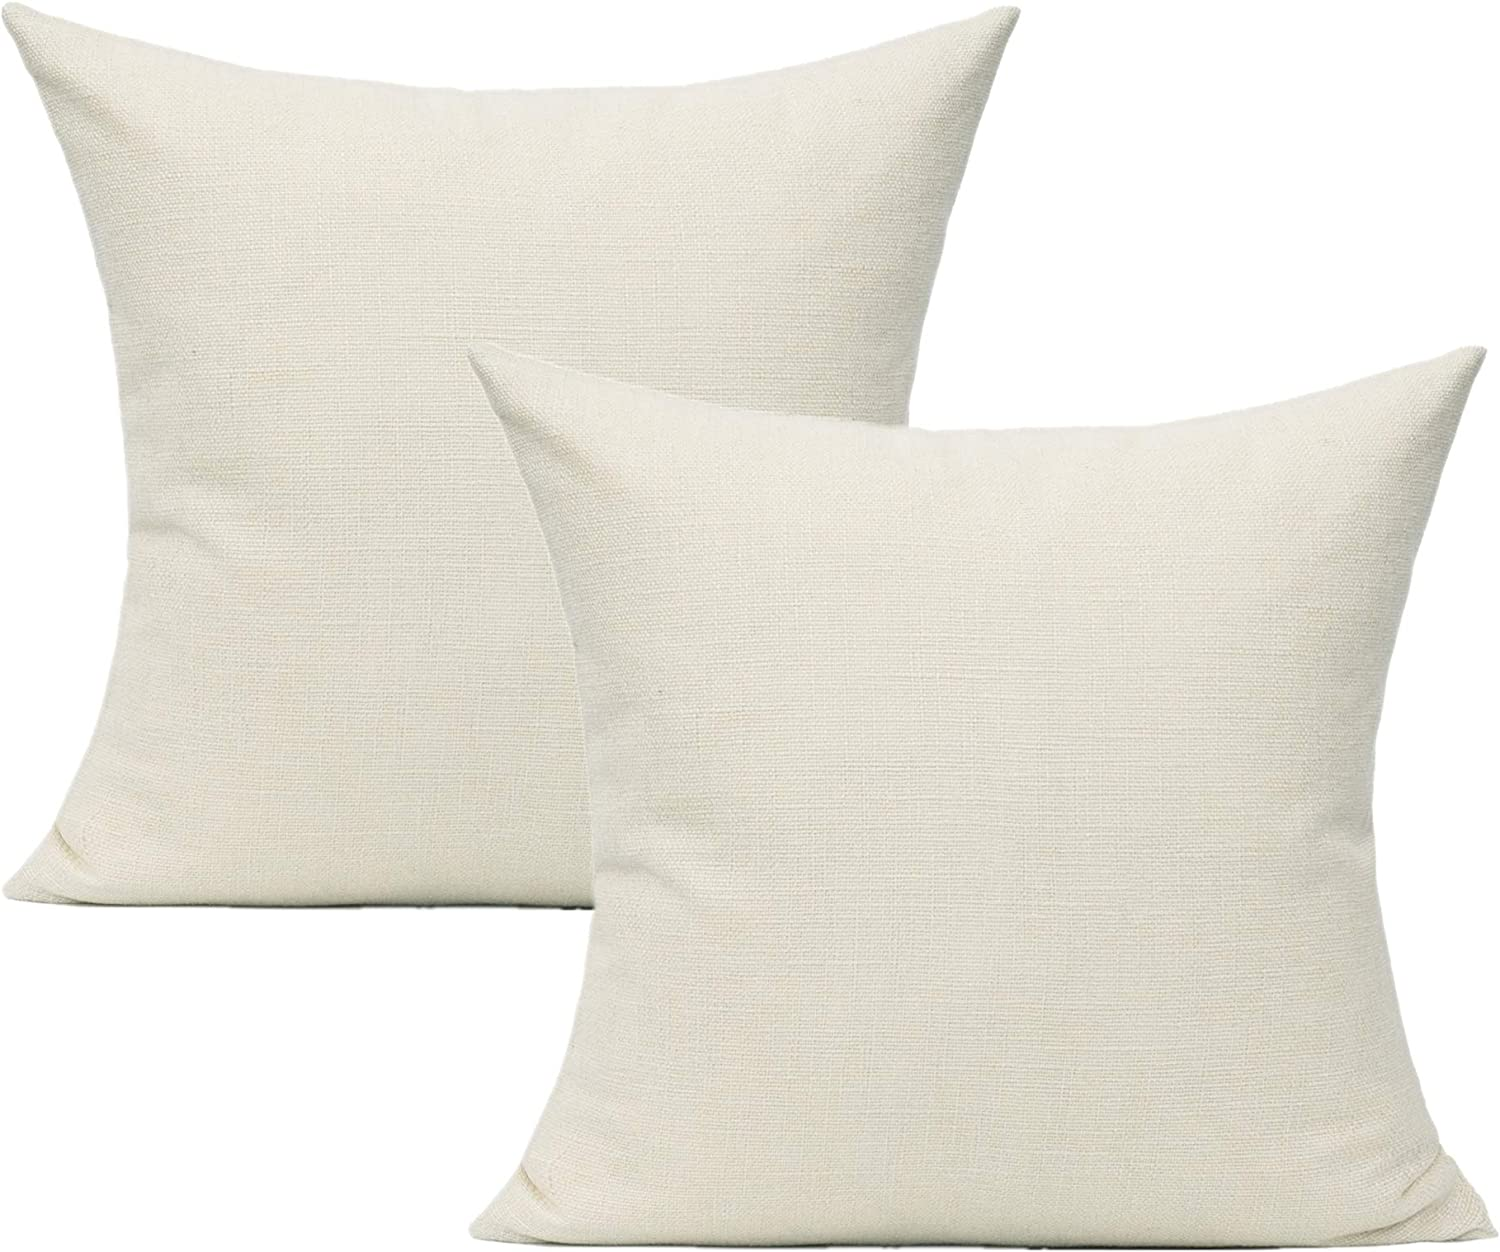 Cream Throw Pillow Covers for Outdoor Patio Furniture Beige Cushions Square Solid Milk White Burlap Cases 16x16 Accent Decorations Sunbrella Seat Sofa Bed Couch Set of 2